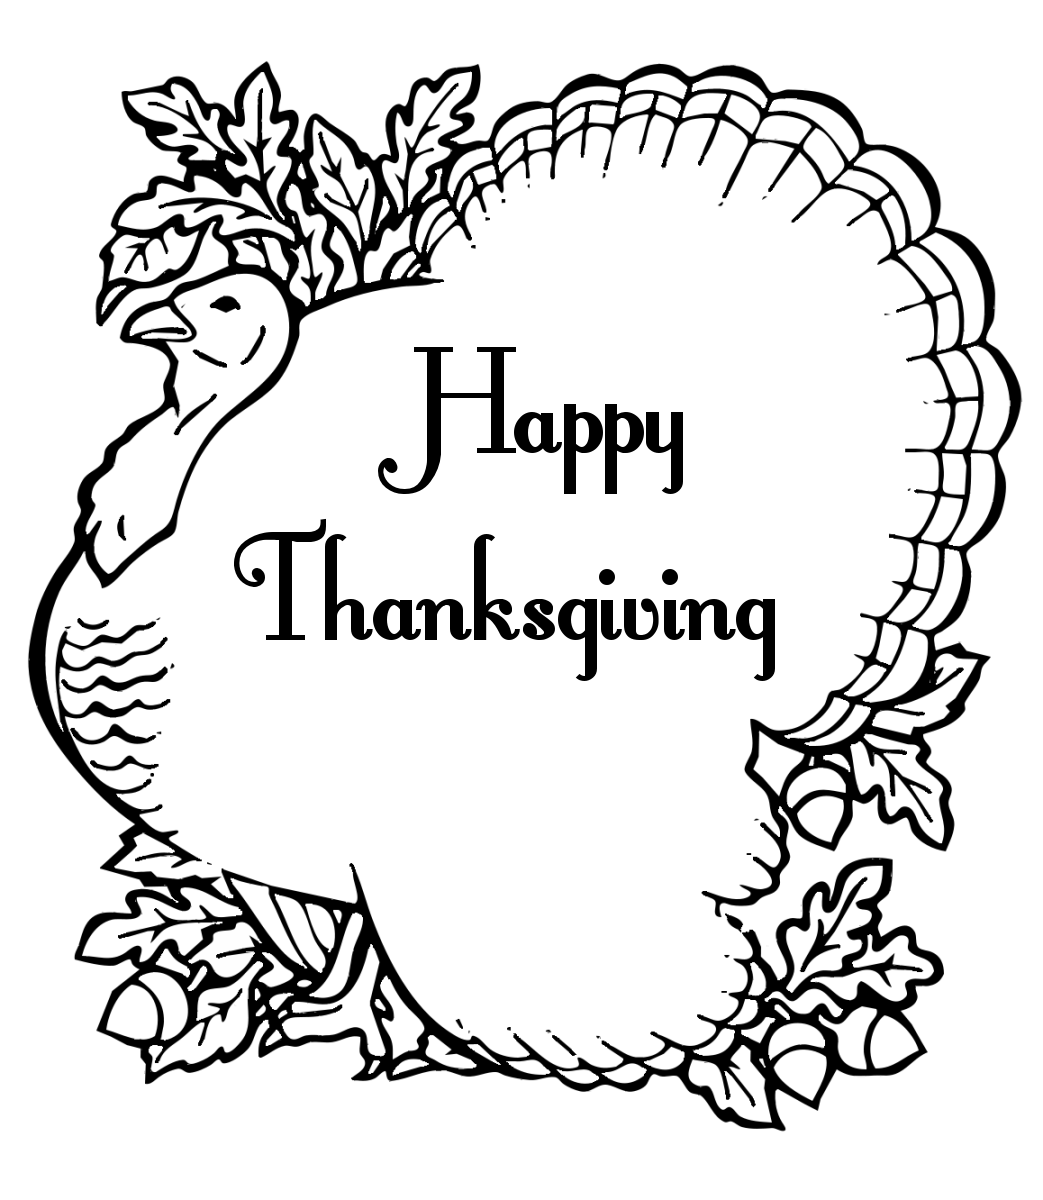 Thanksgiving Coloring Pages 2 Coloring Pages To Print Thanksgiving Coloring Book Pages